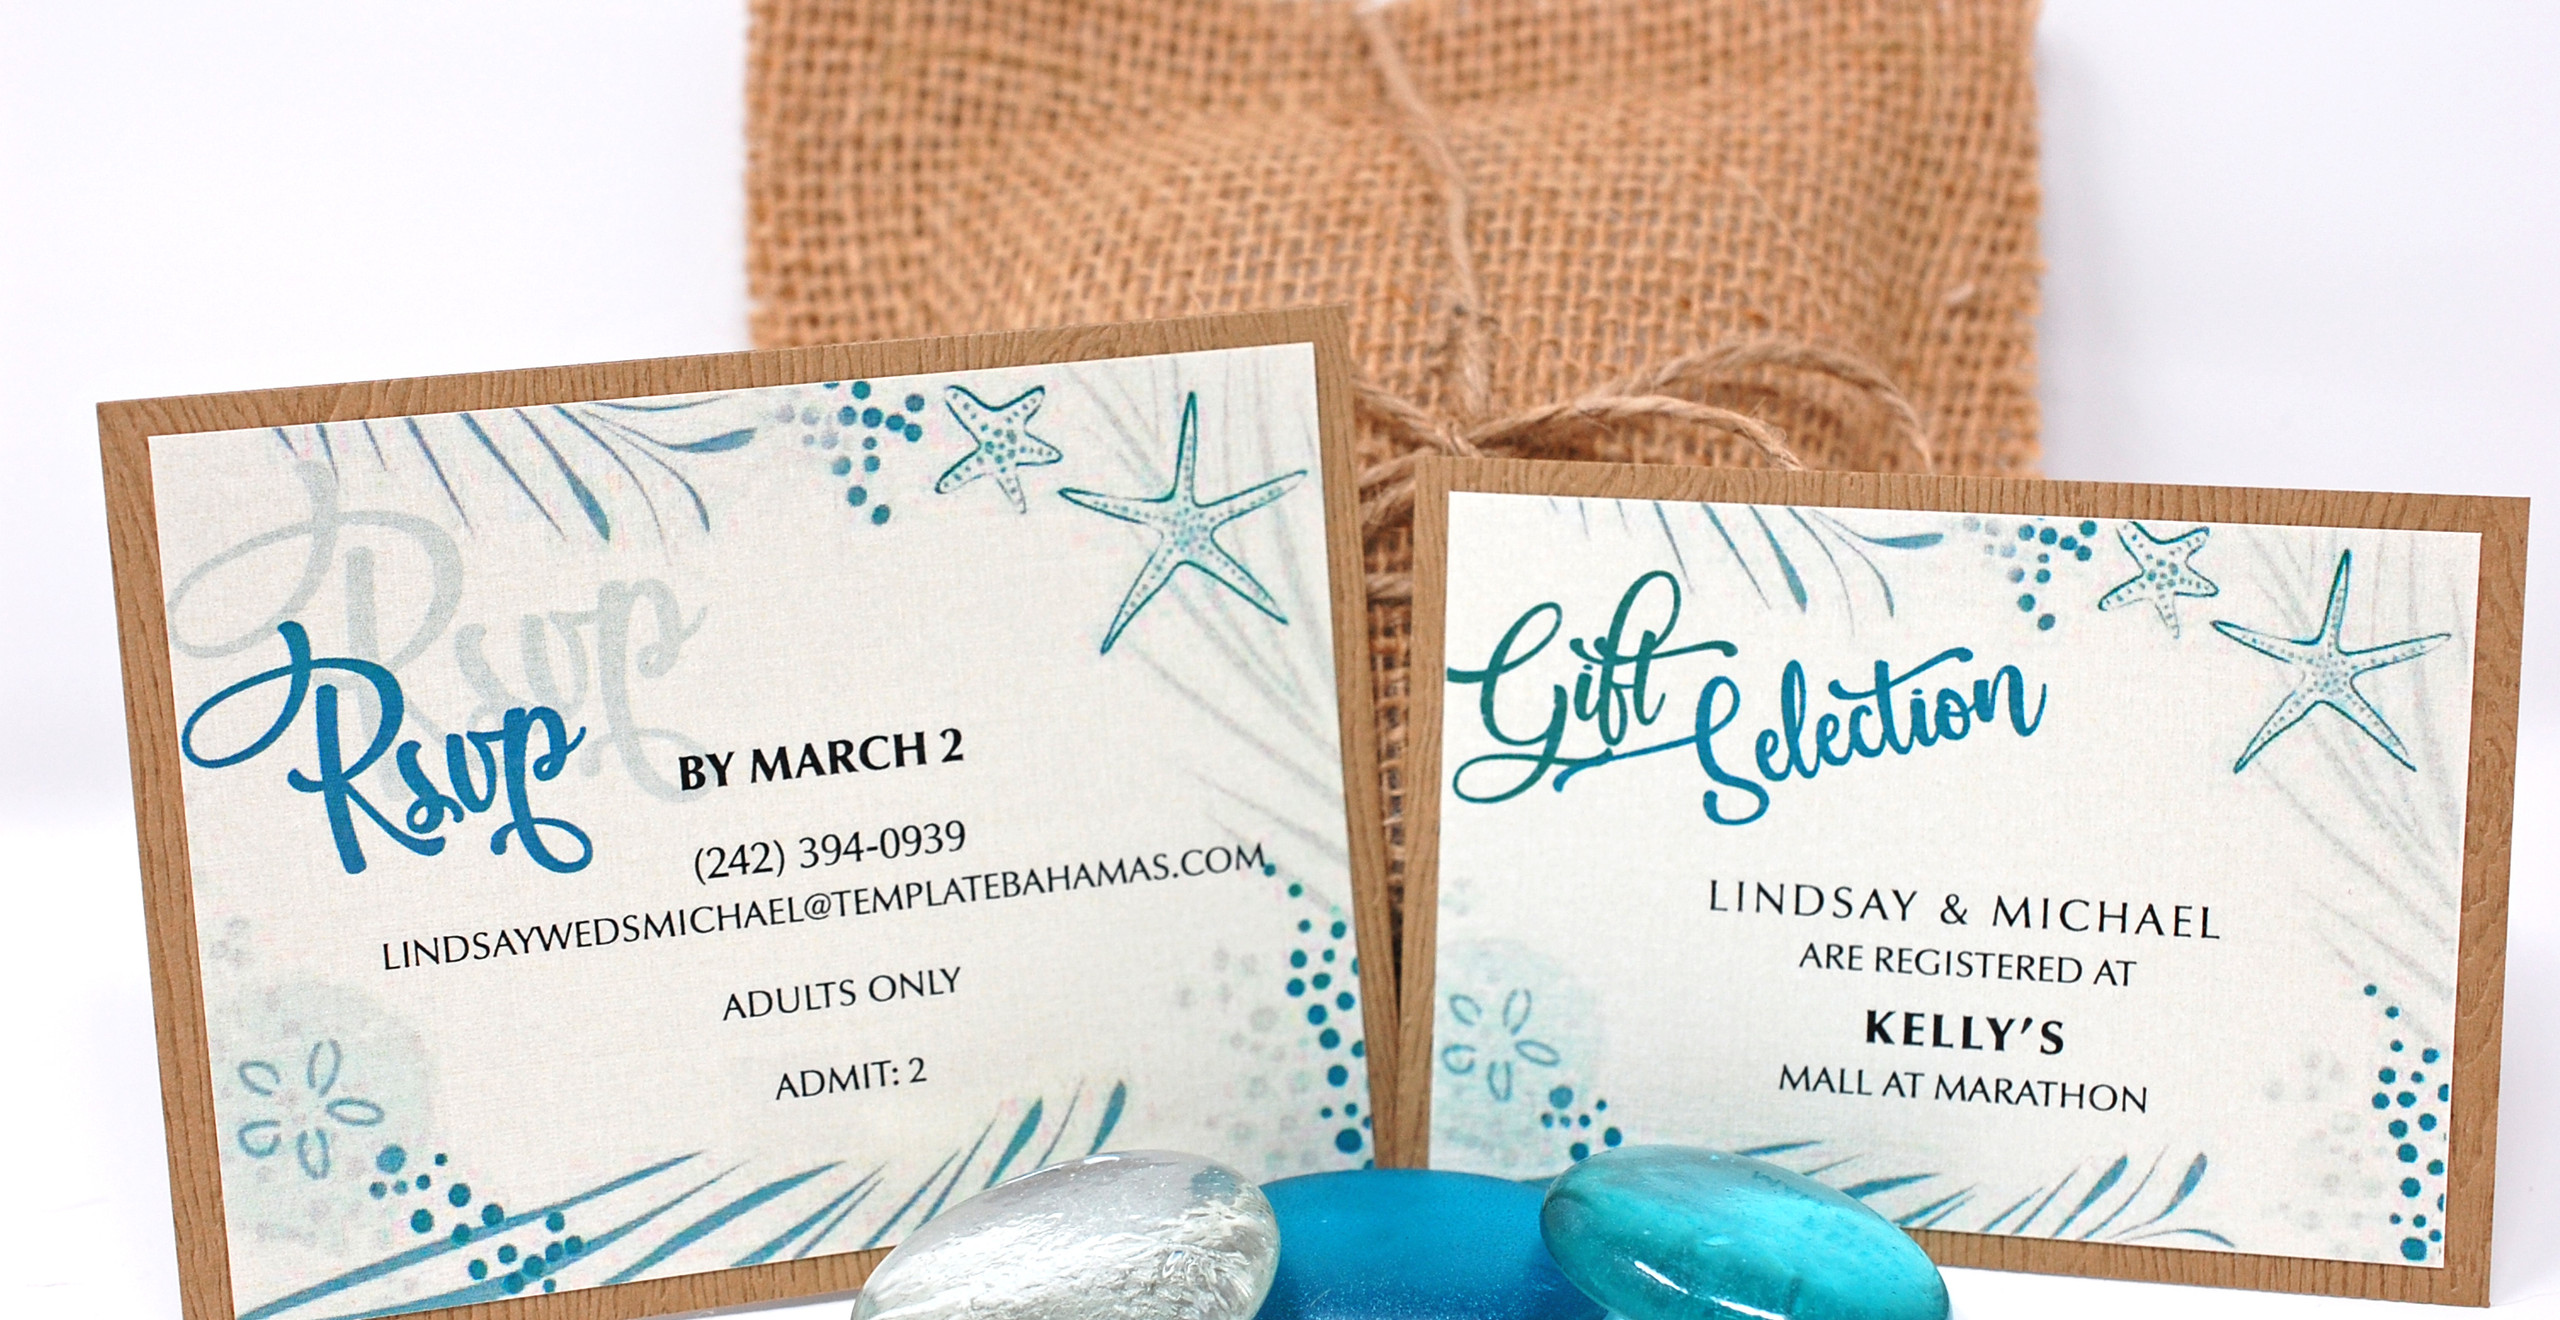 Matching reception and gift selection cards